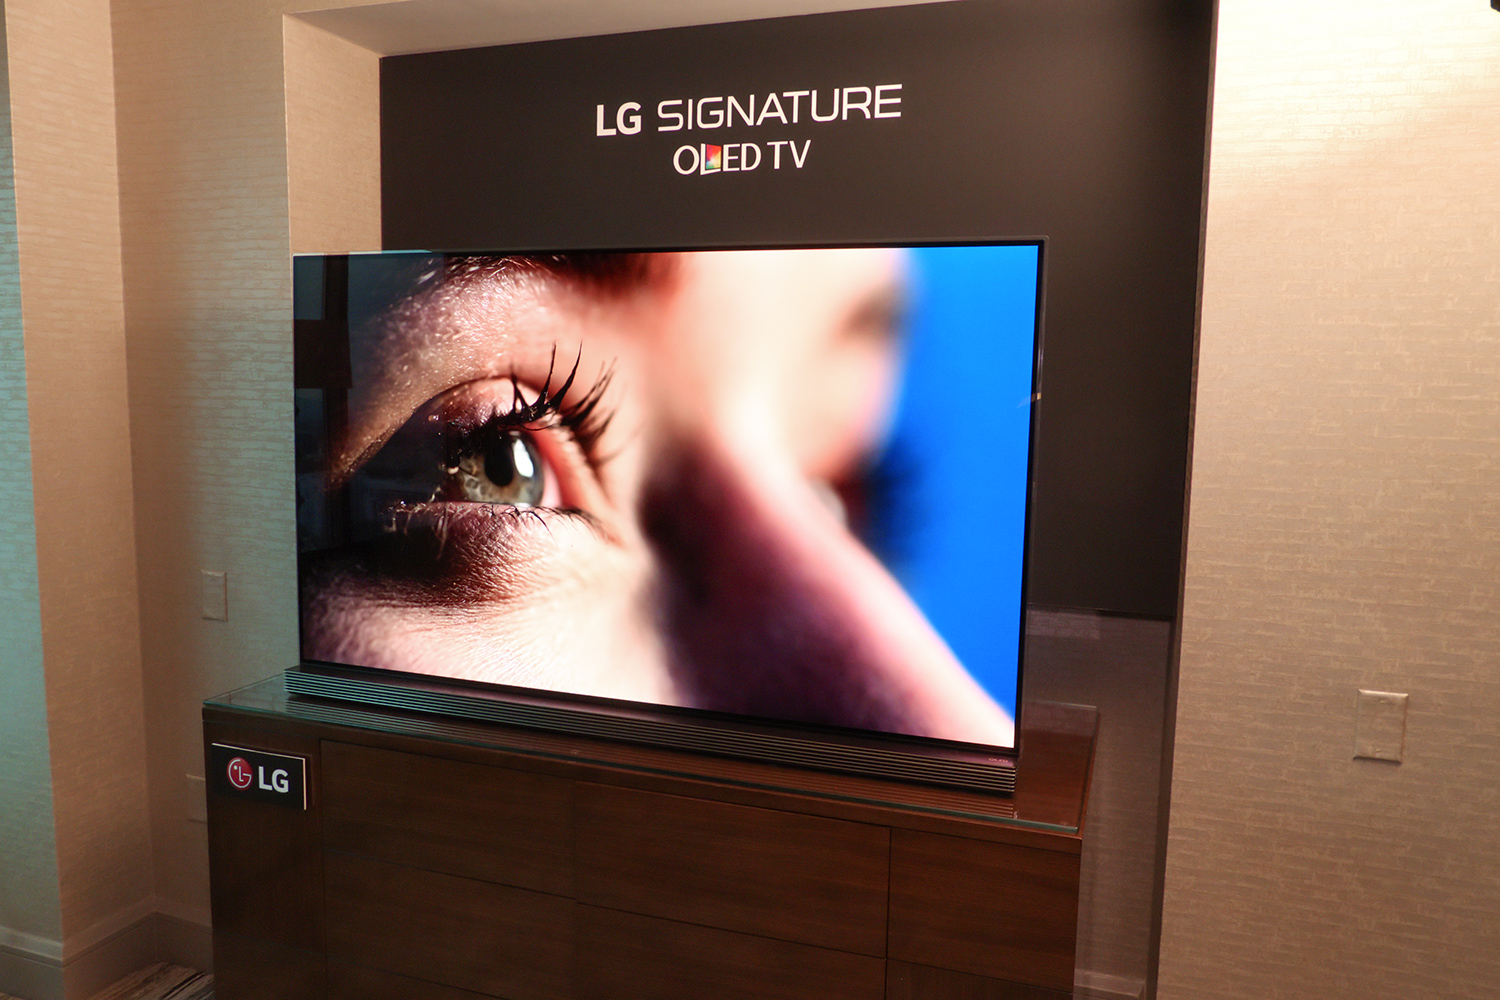 oled just got cheaper lg s ultra thin 65 inch signature. Black Bedroom Furniture Sets. Home Design Ideas